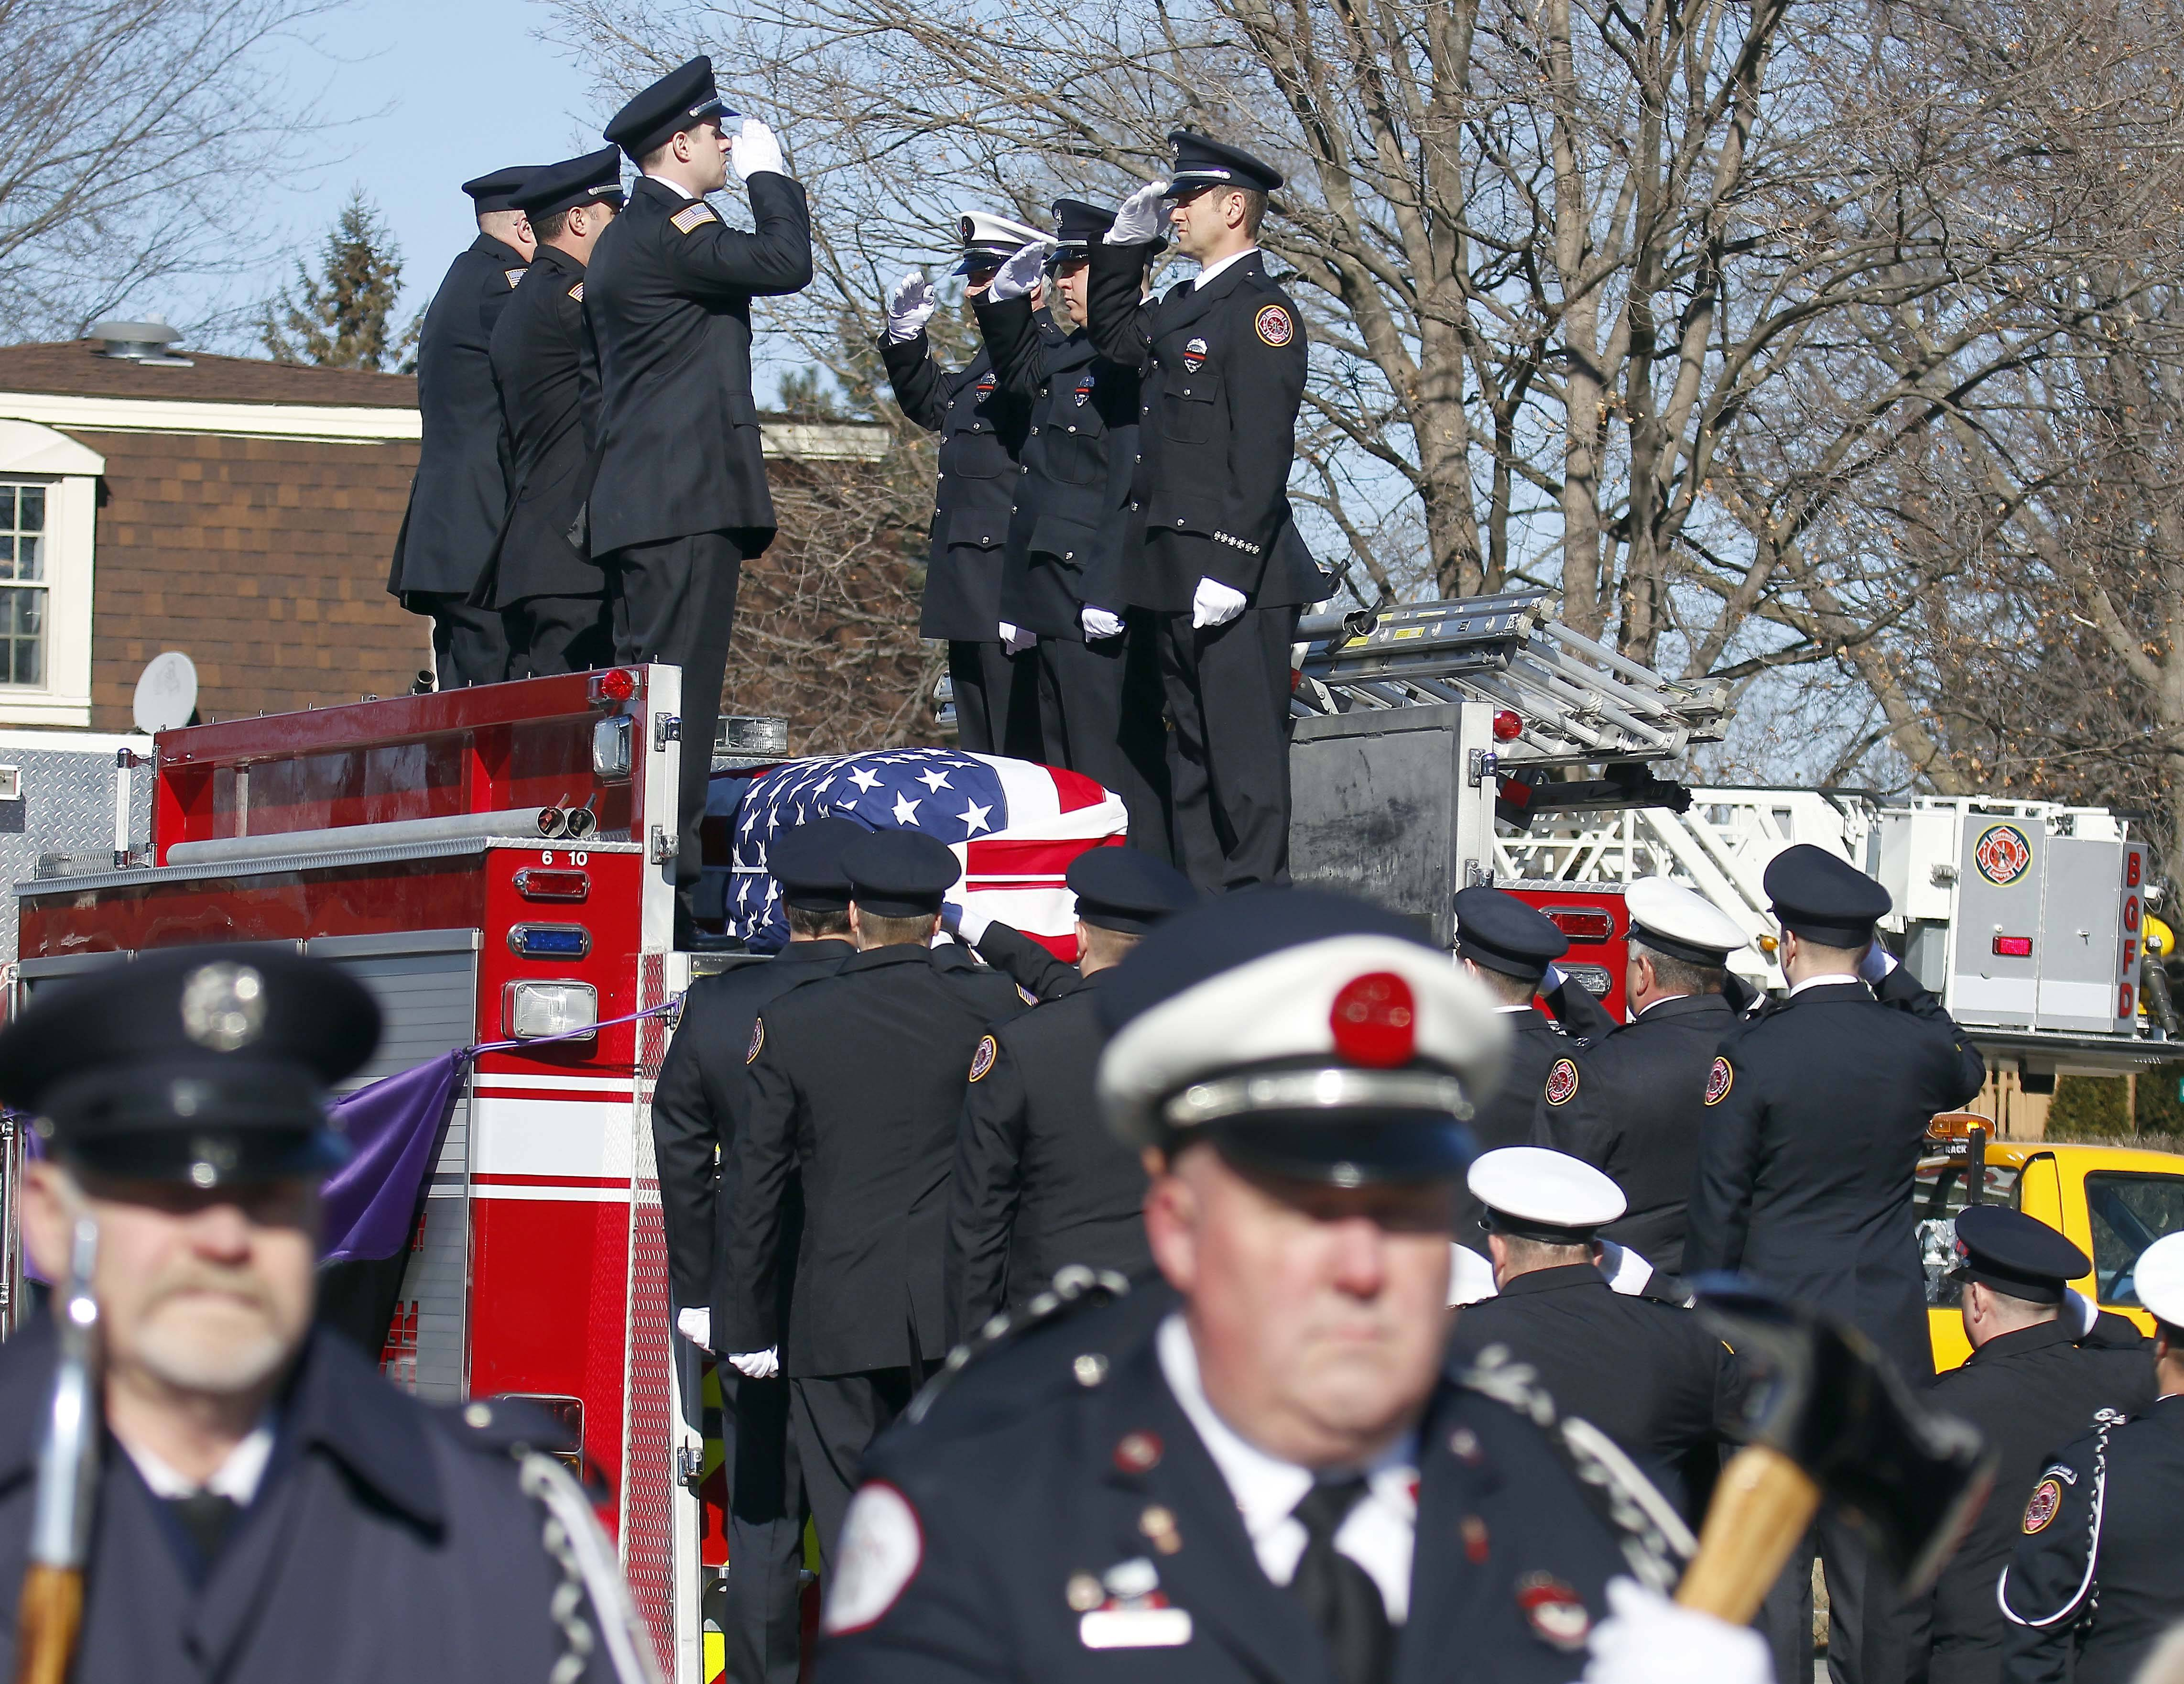 Buffalo Grove firefighters honor one of their own at funeral